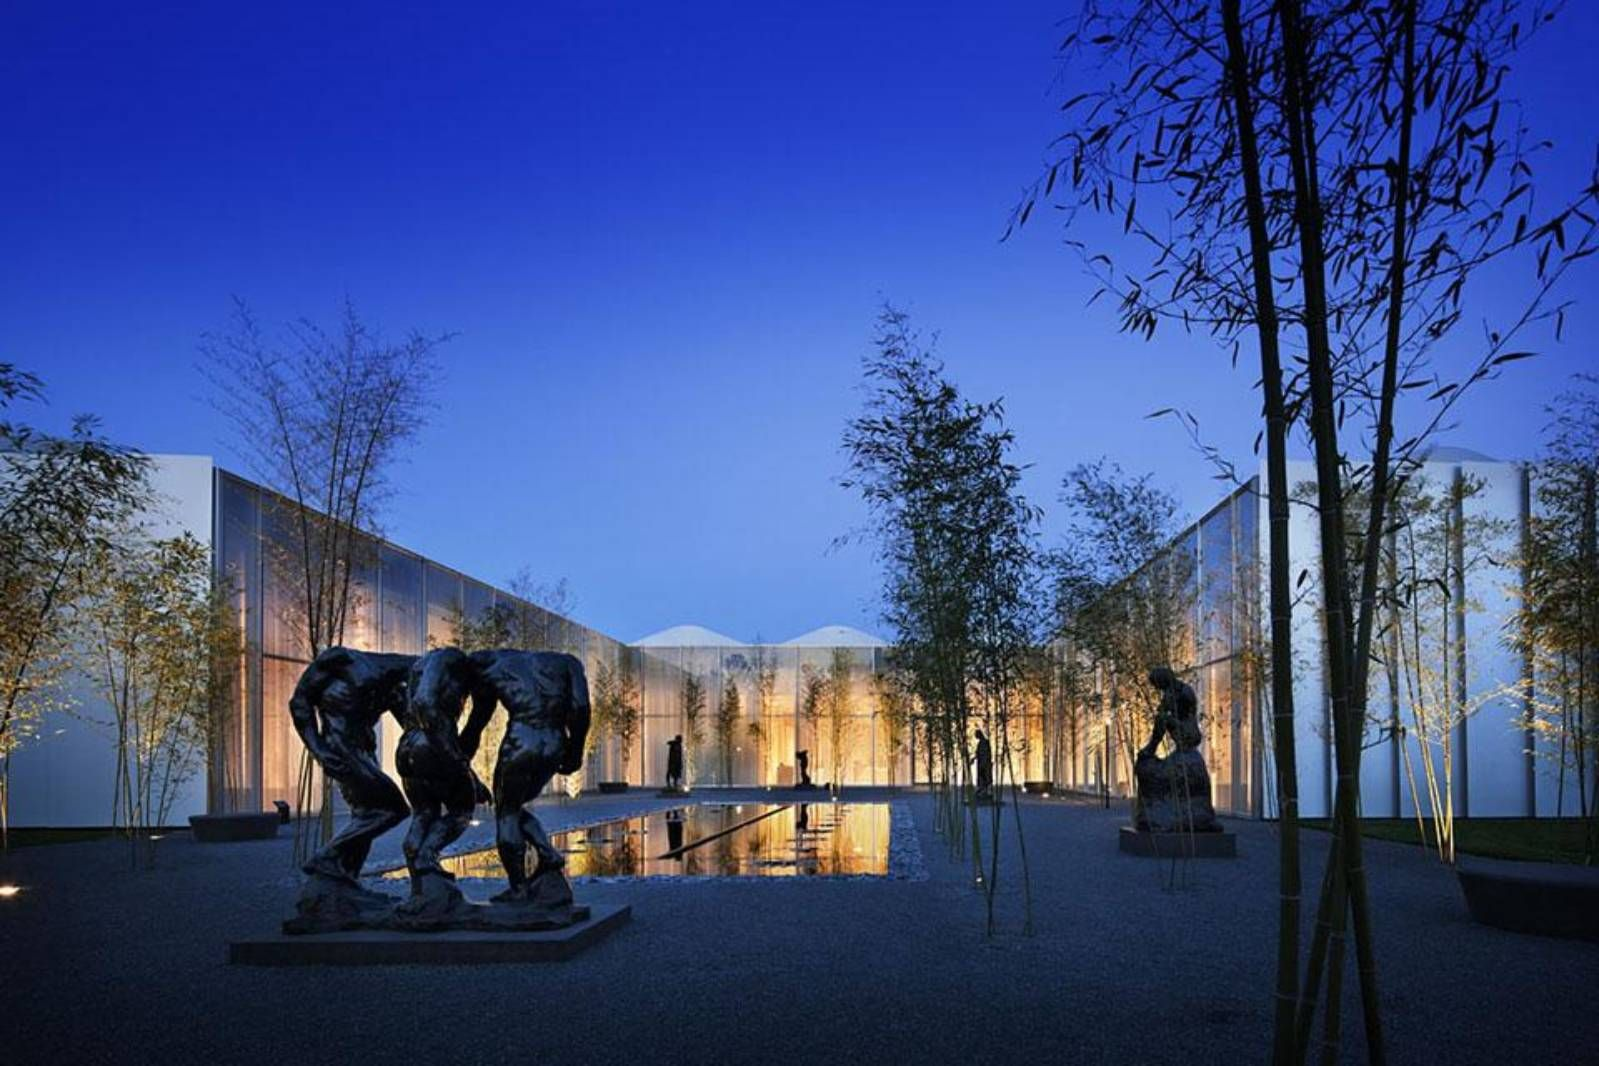 NORTH CAROLINA MUSEUM OF ART BY THOMAS PHIFER AND PARTNERS